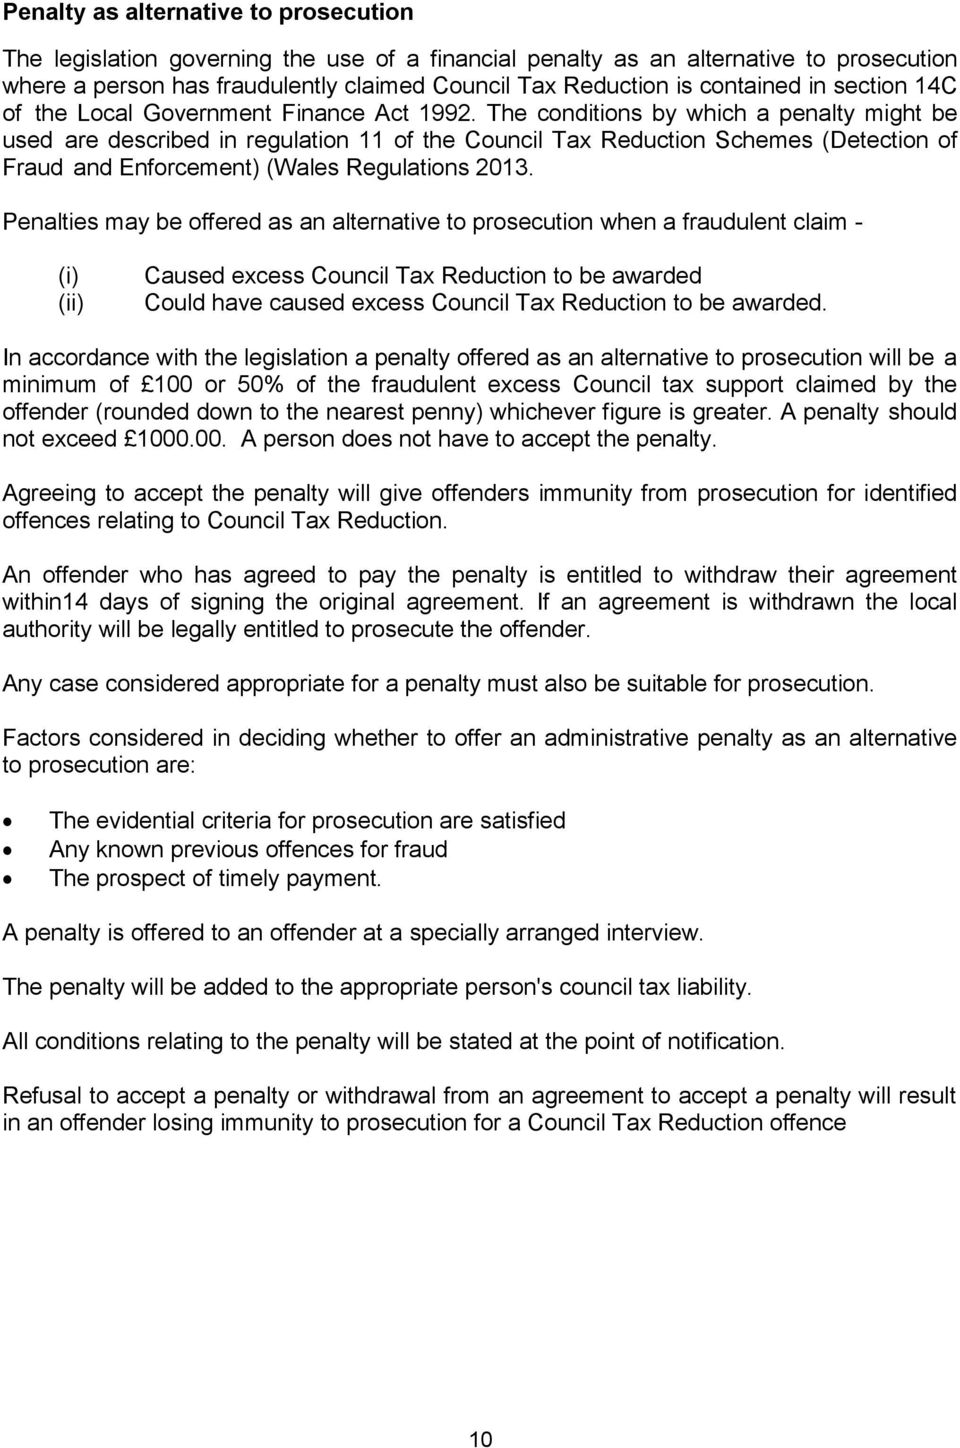 The conditions by which a penalty might be used are described in regulation 11 of the Council Tax Reduction Schemes (Detection of Fraud and Enforcement) (Wales Regulations 2013.